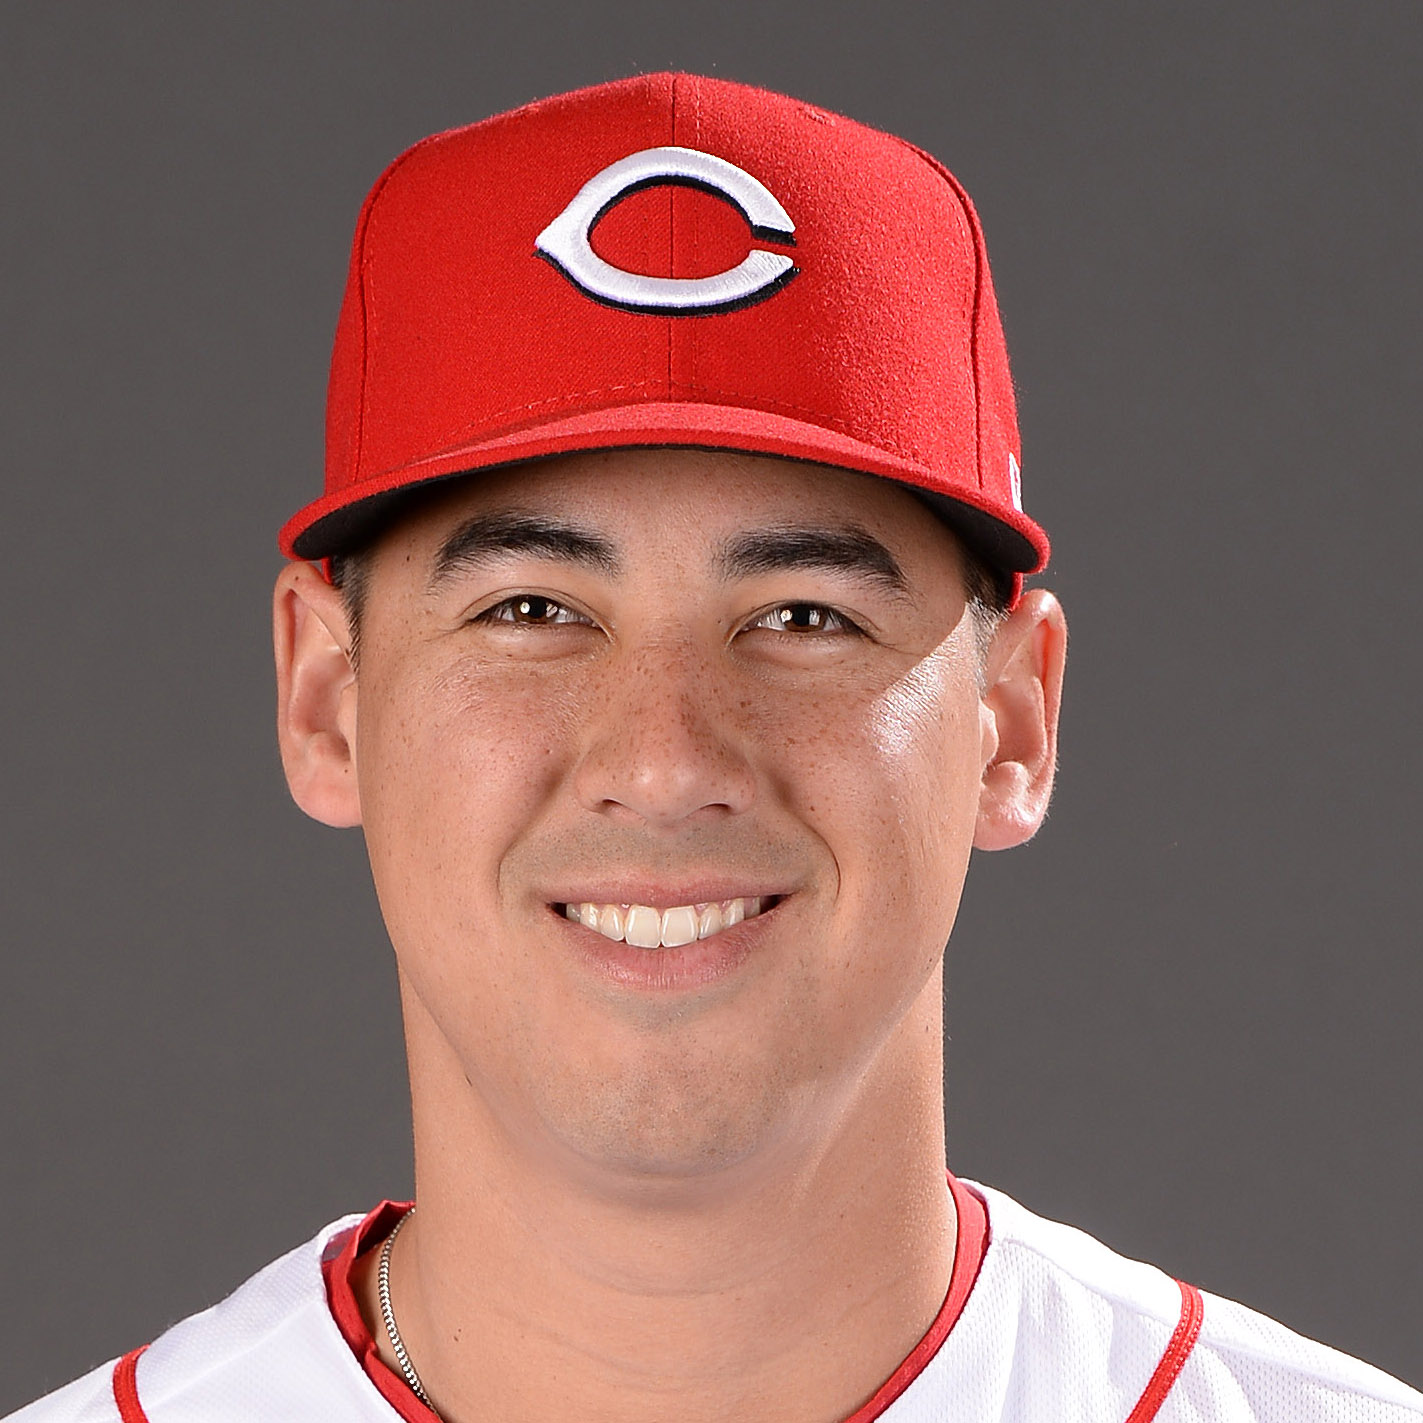 Robert Stephenson (R) Headshot